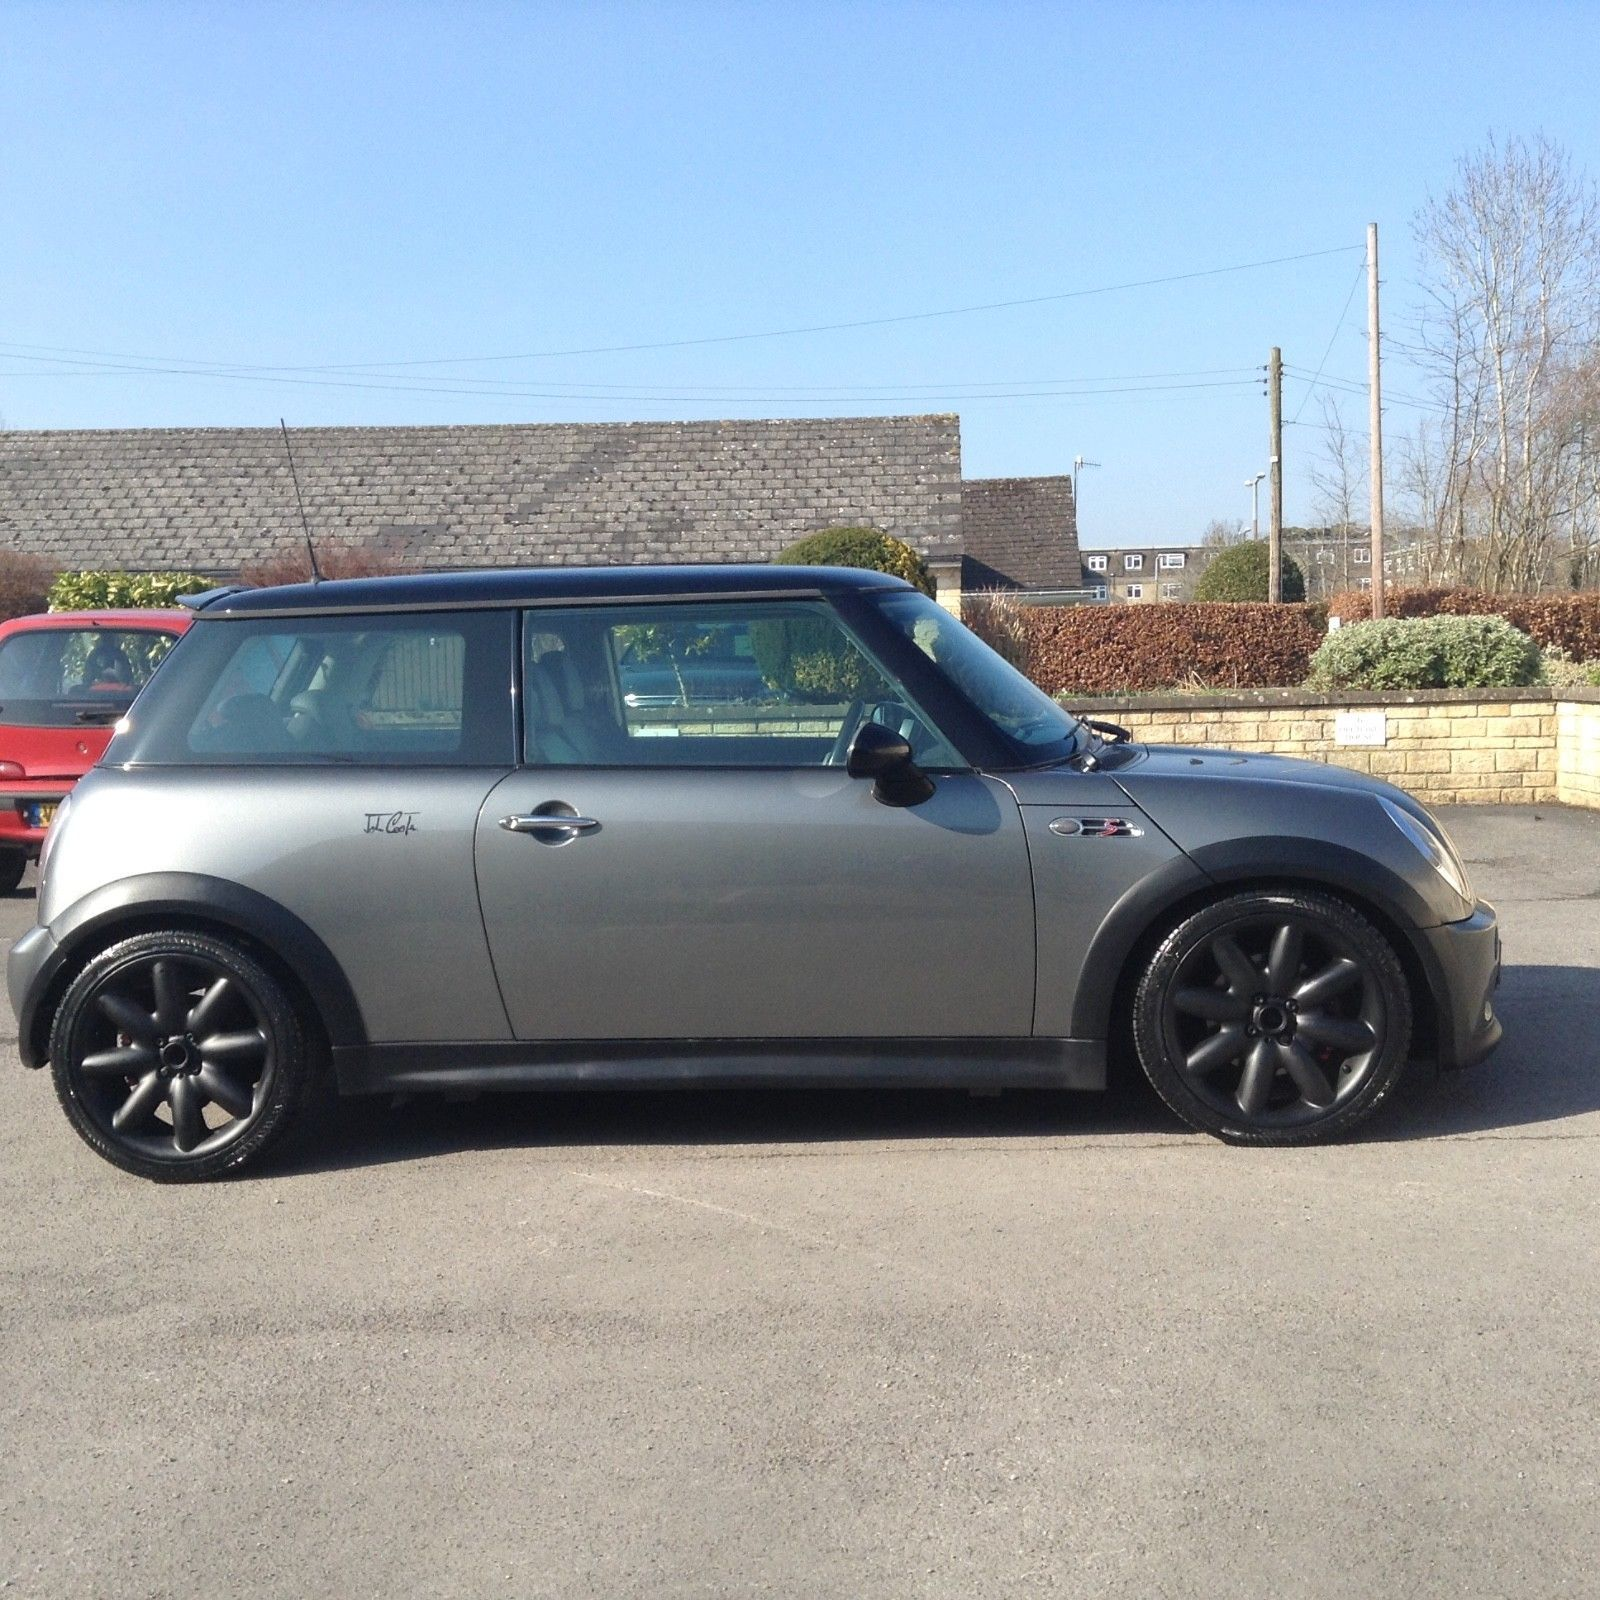 Ebay Mini Cooper S 200bhp Lowered Remap 17 Supercharger